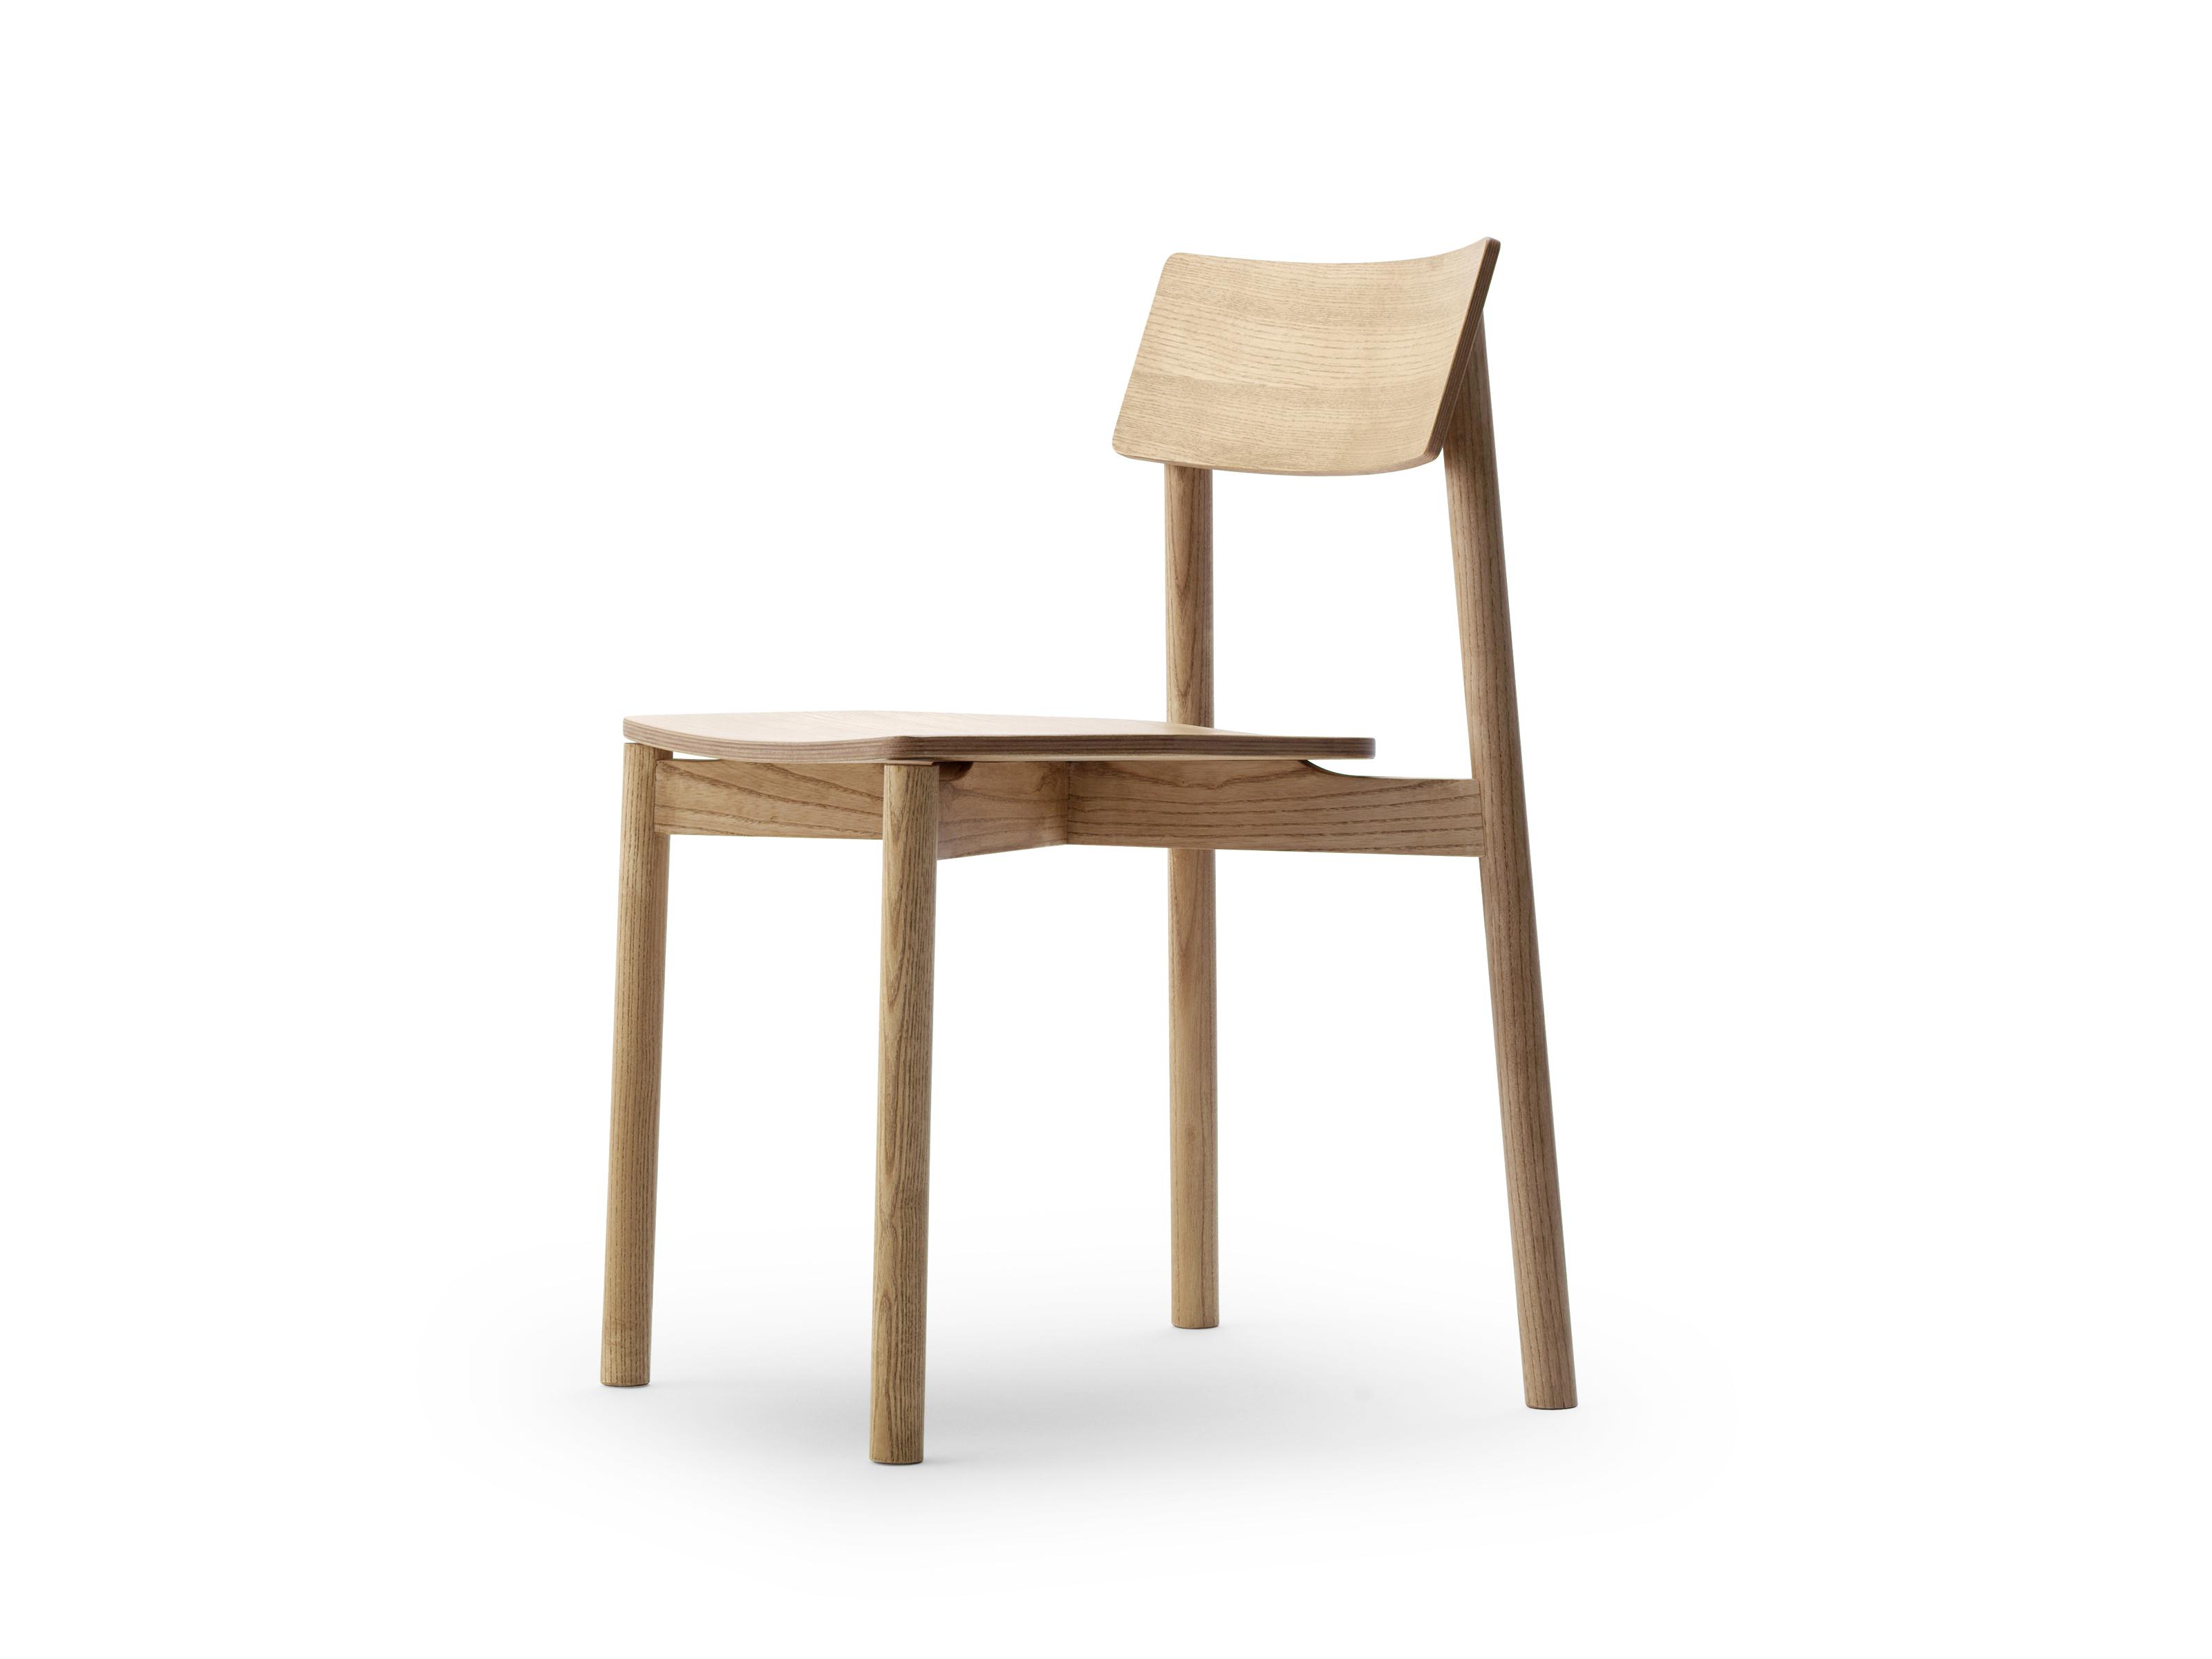 chris connell very wood italian chair makers